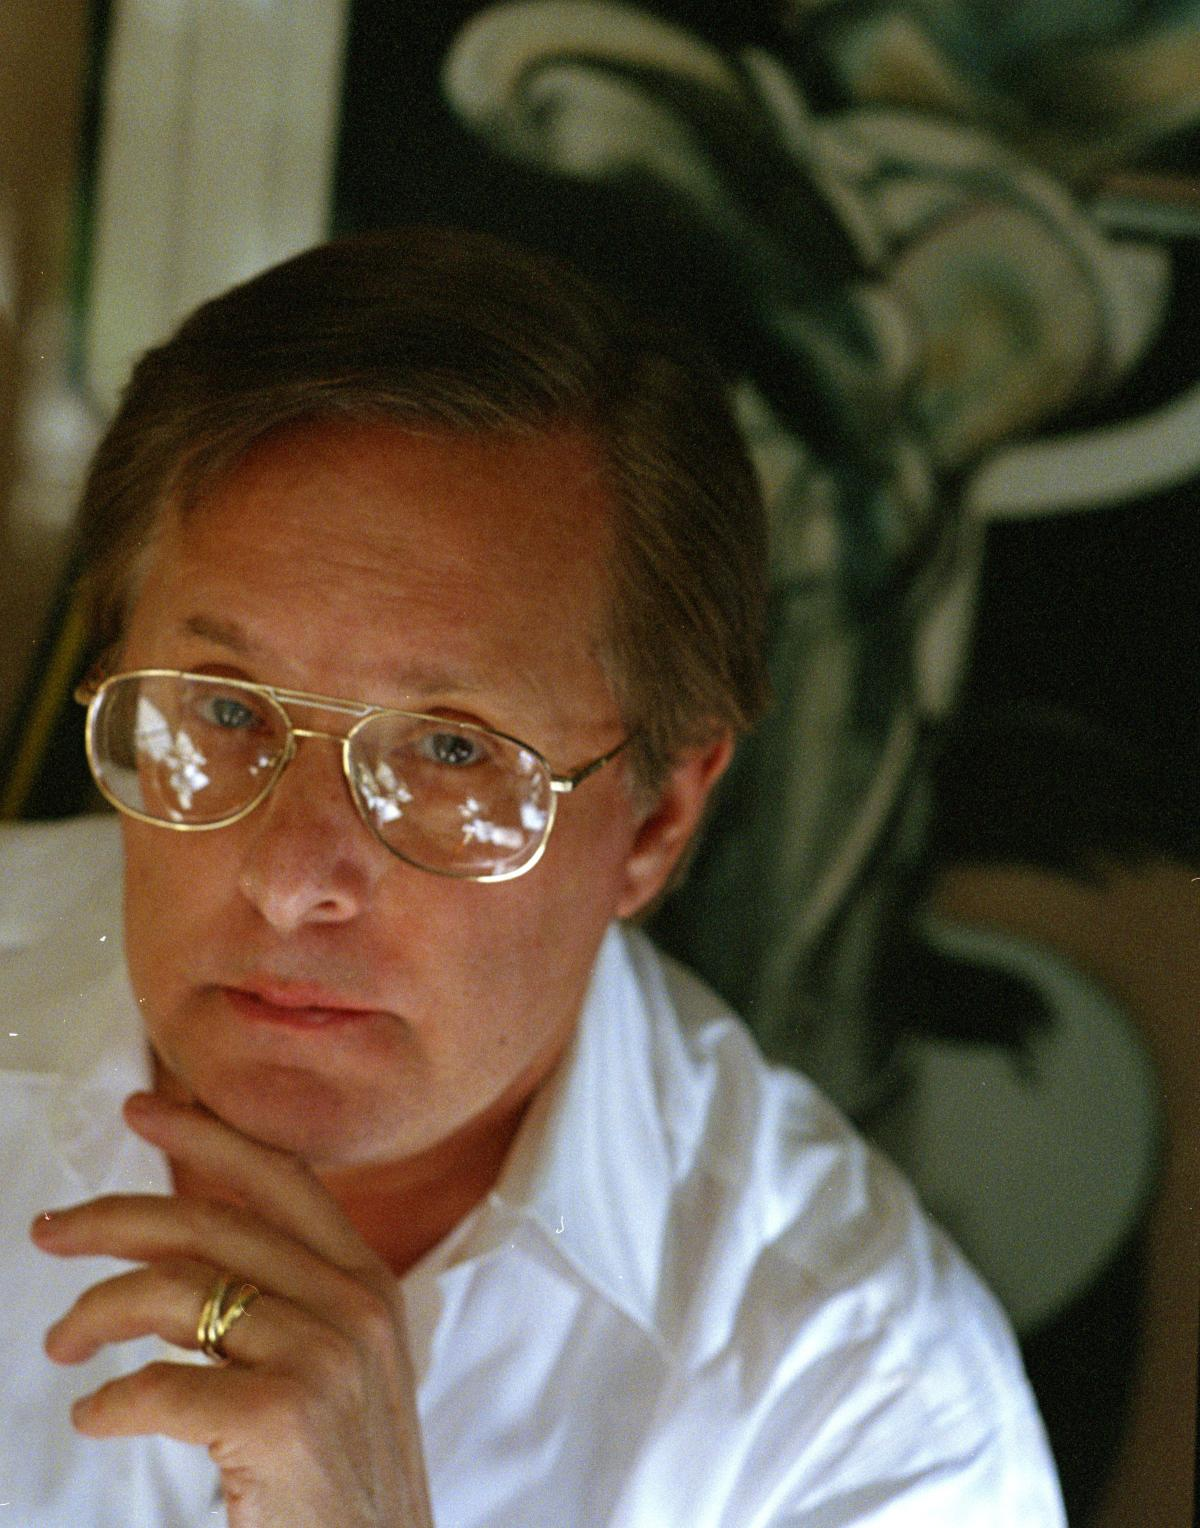 Director William Friedkin is best known for the classic films The Exorcist and The French Connection. His new memoir is The Friedkin Connection.